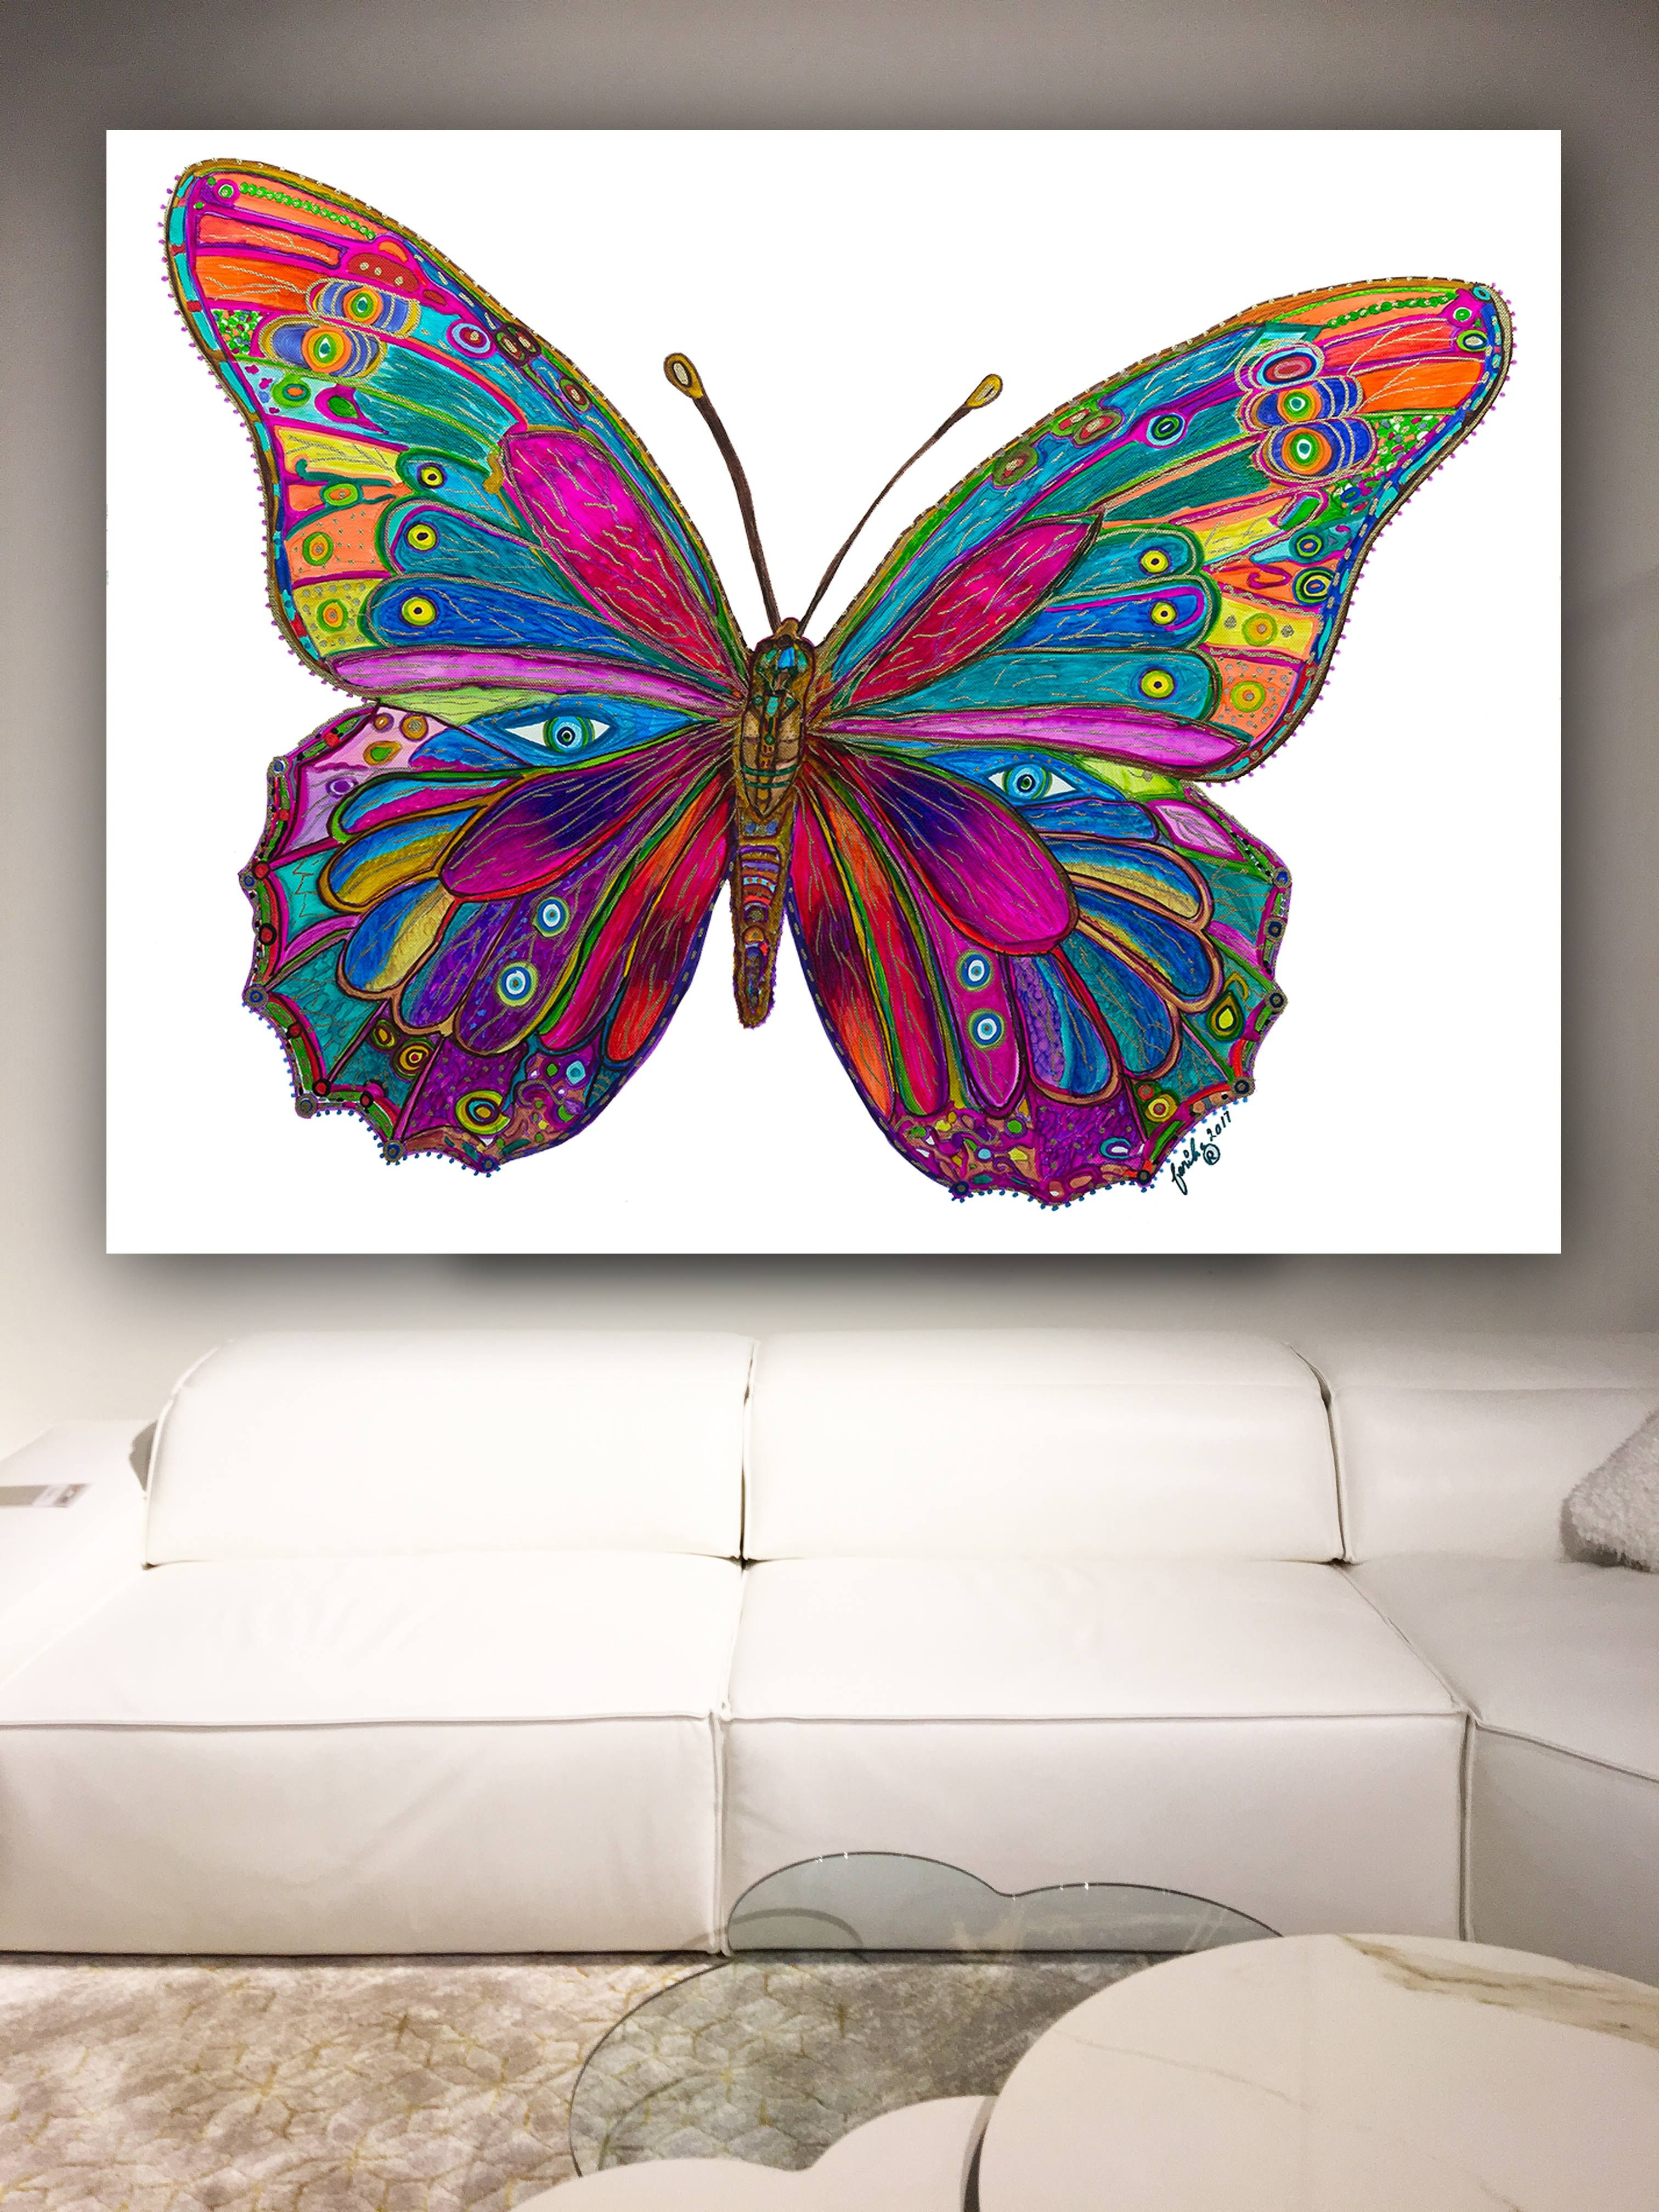 Butterfly Spirit Animal Abstract Art Painting Framed Canvas Print